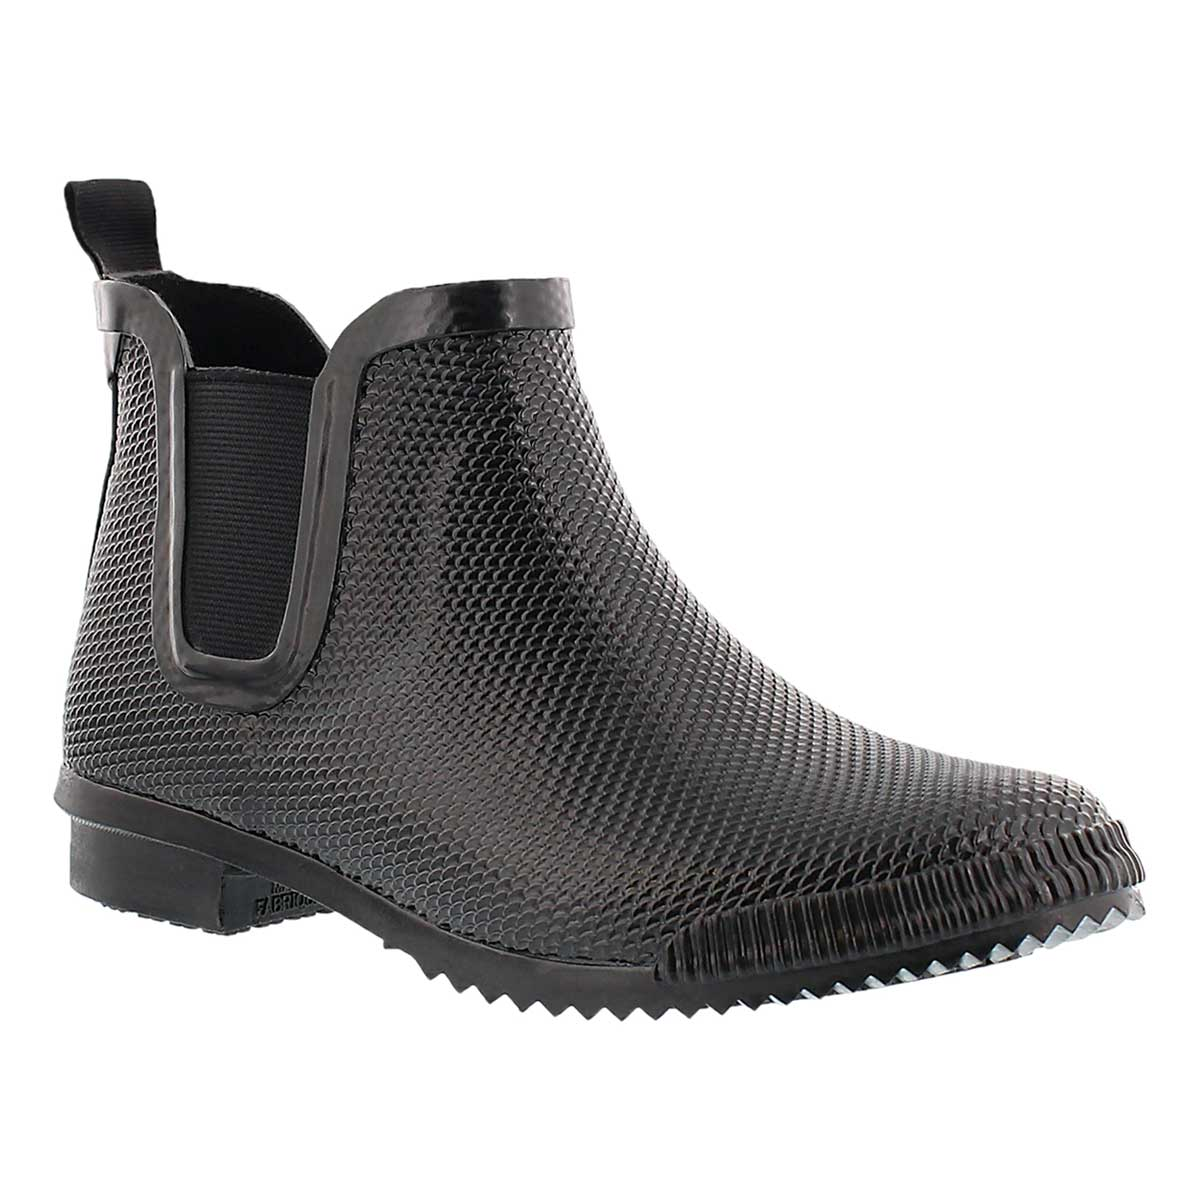 Lds Regent black short rubber boot